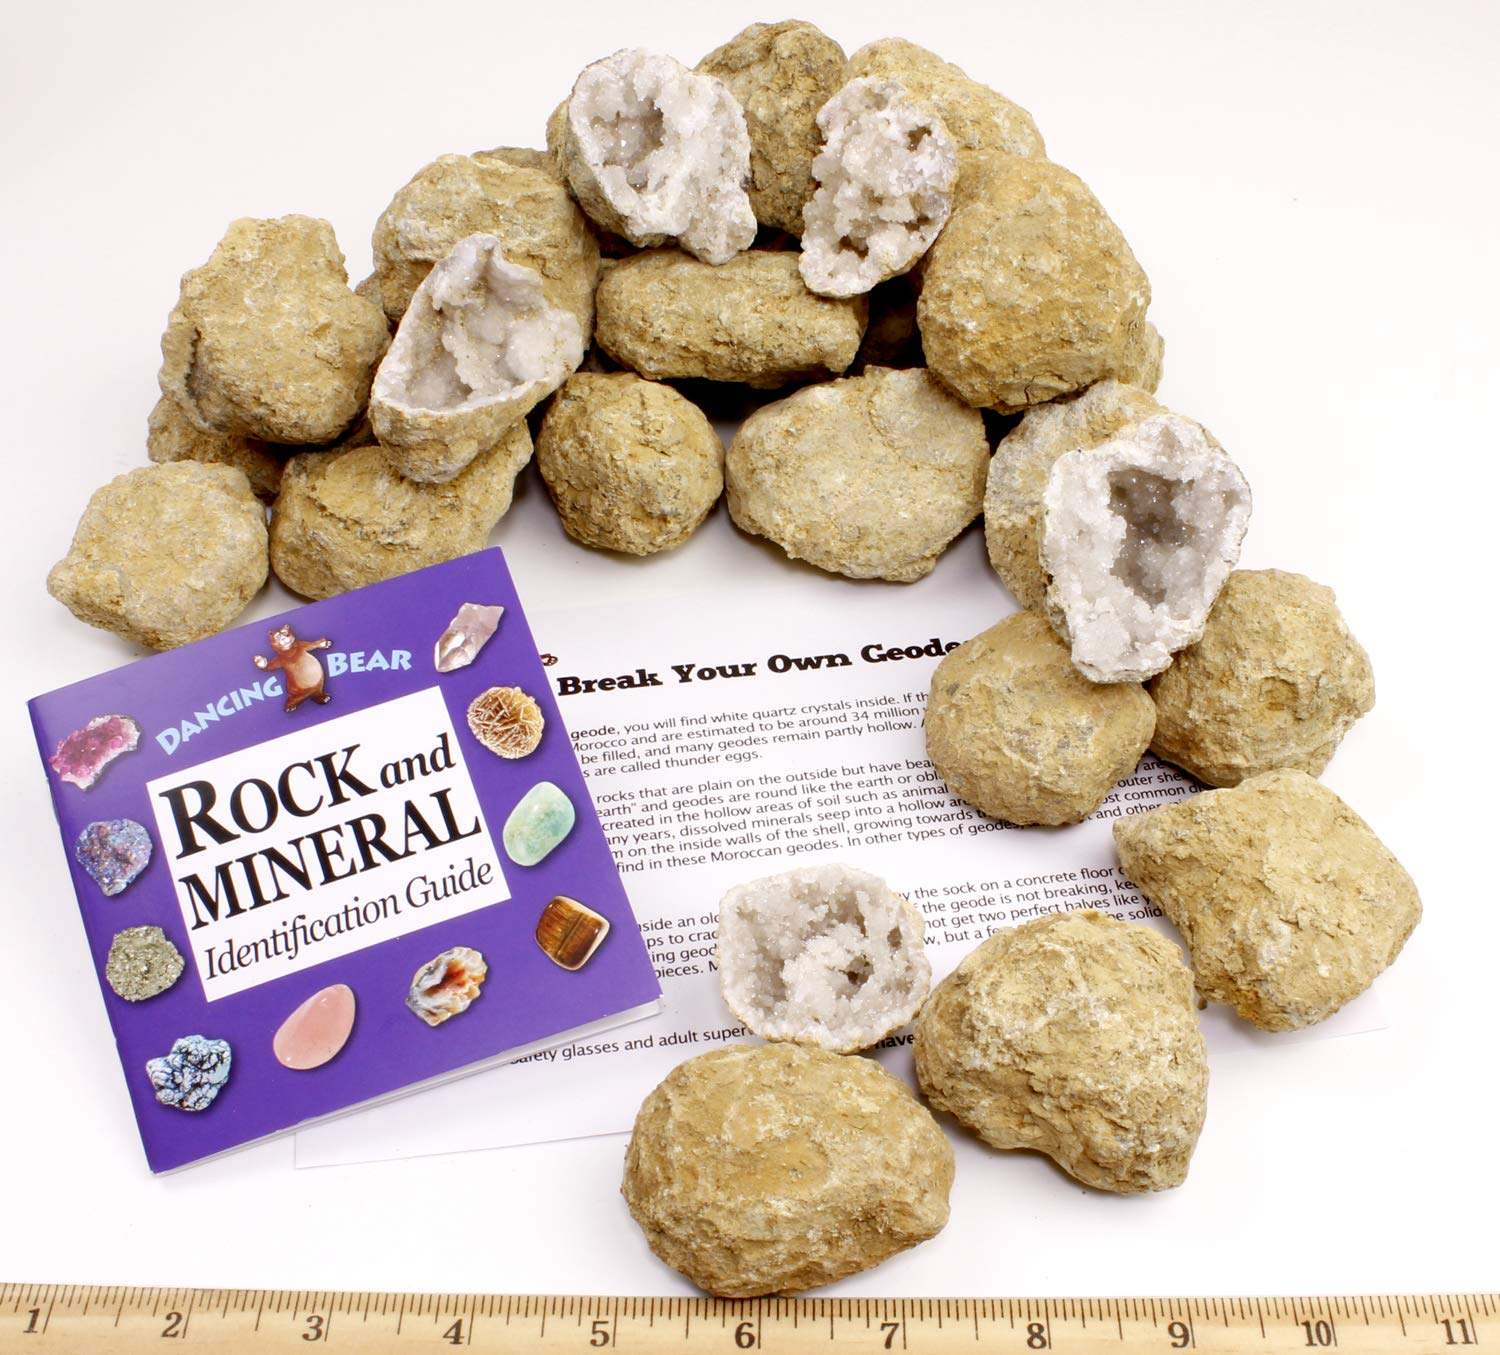 50 Break Your Own Geodes, 90% Hollow Large ( 2-2.5'') Easy Crack Open & Discover Surprise Crystals Inside! Educational Info and Instructions Included, Fun Party Favors & Prizes, Dancing Bear Brand